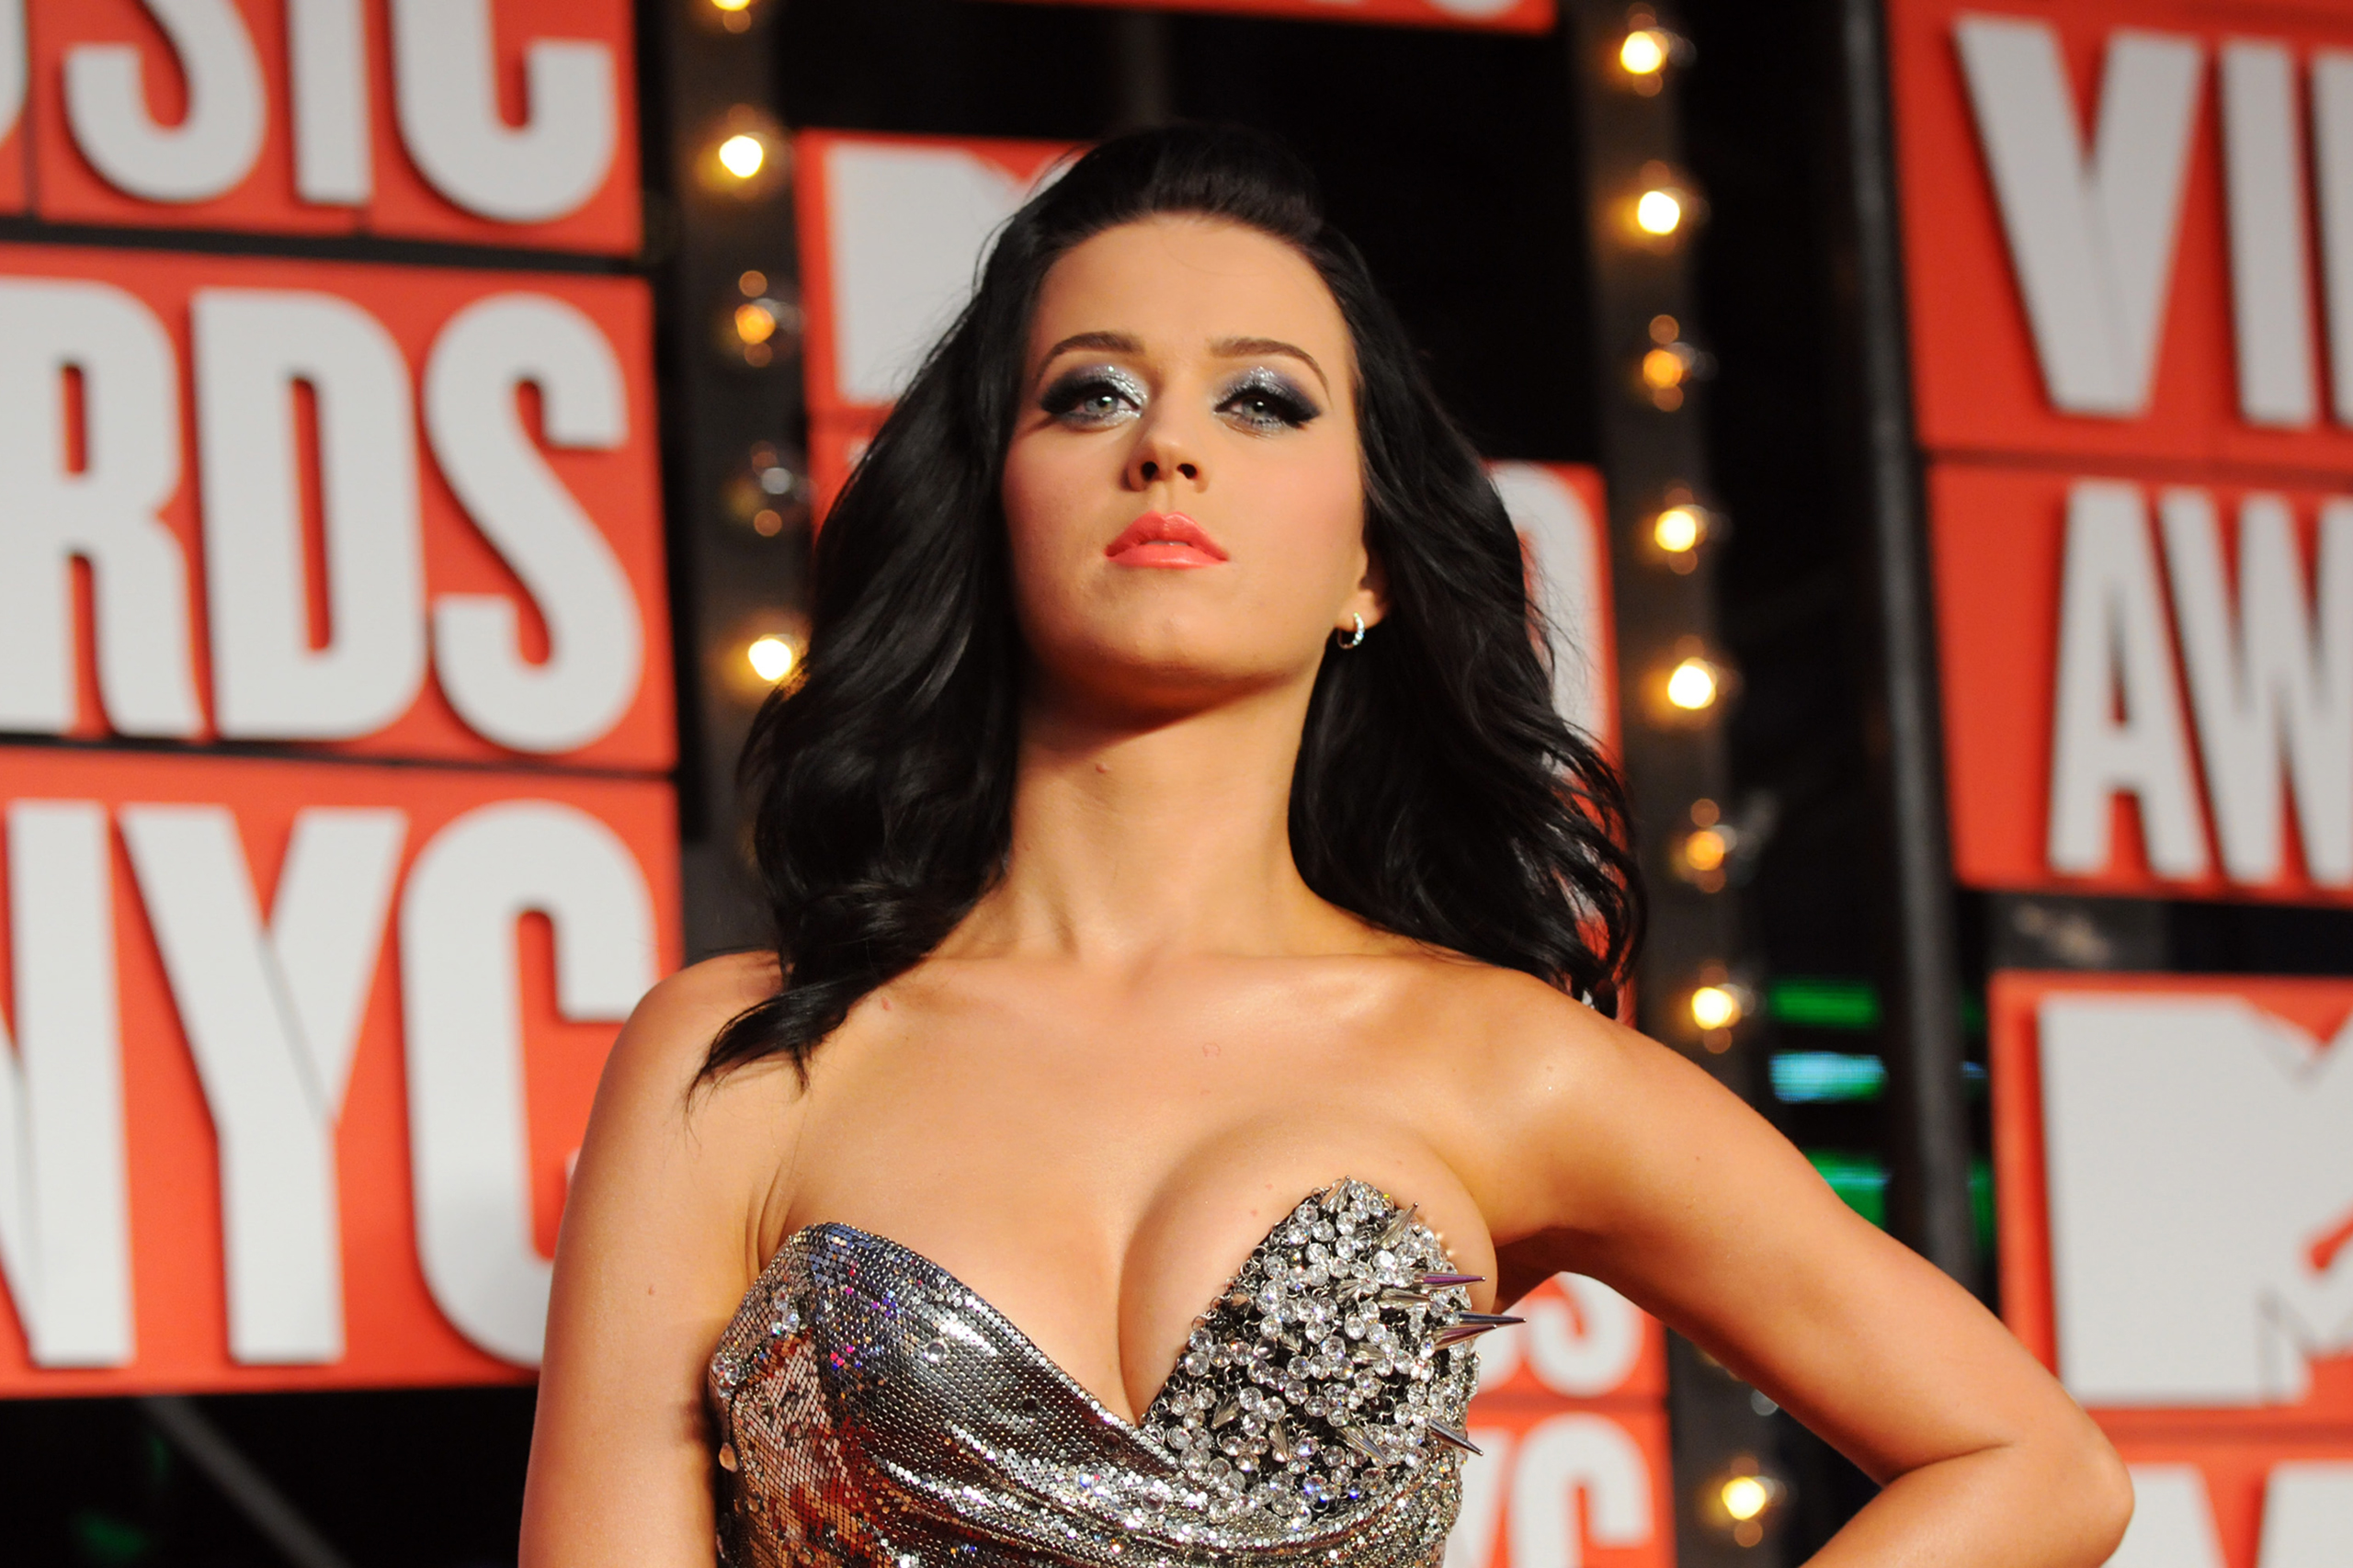 Singer Katy Perry arrives at the MTV Video Music Awards in New York, on Sept. 13, 2009.